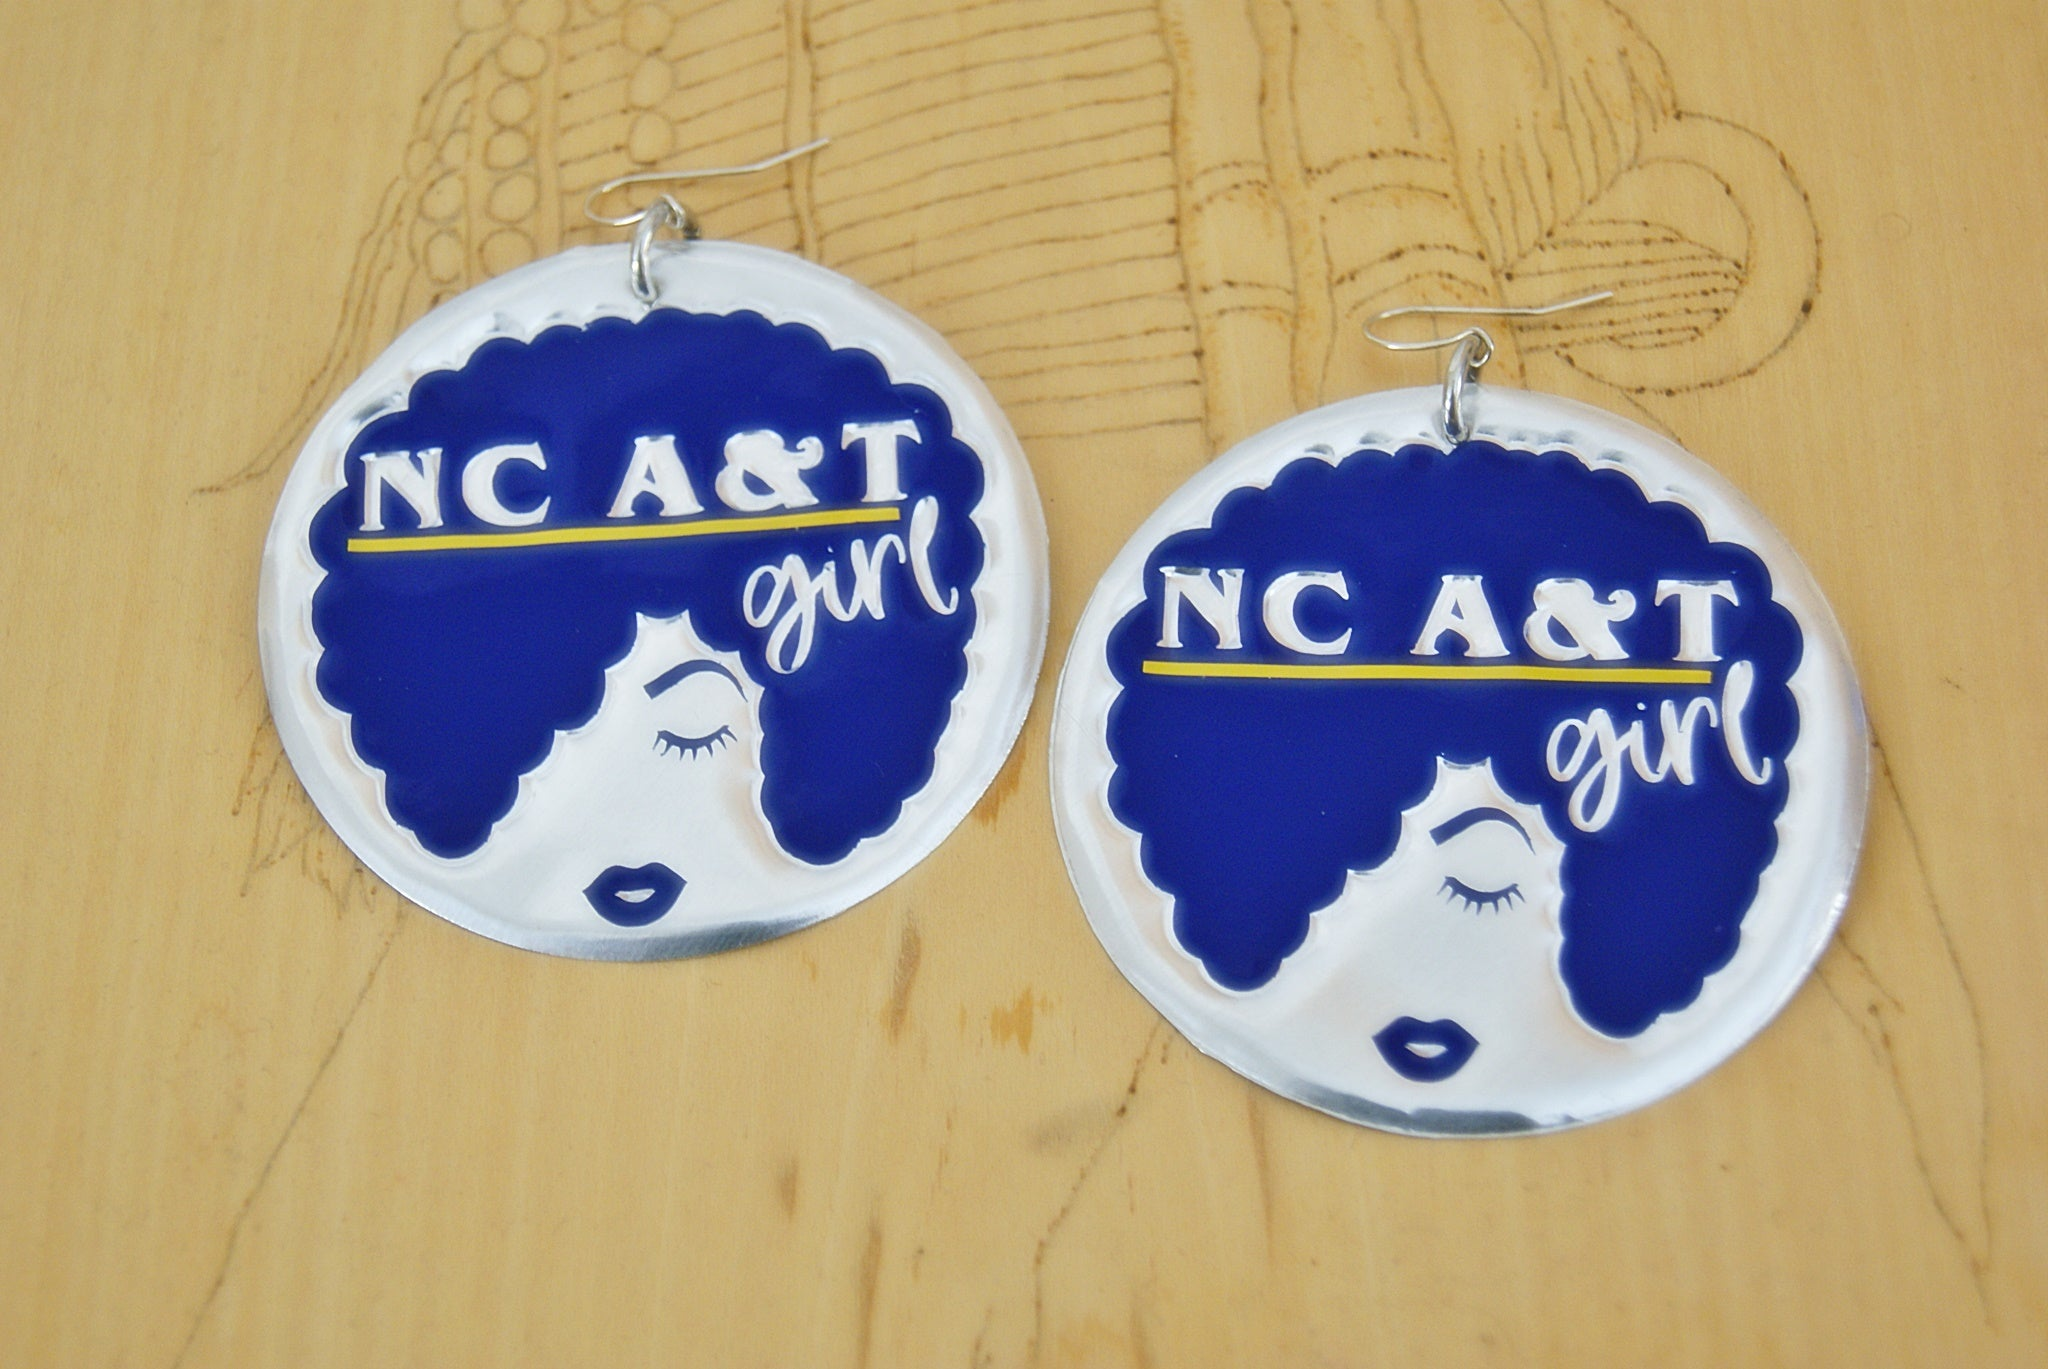 'NC A&T Girl' HBCU Afro Collection Afro Statement Earrings